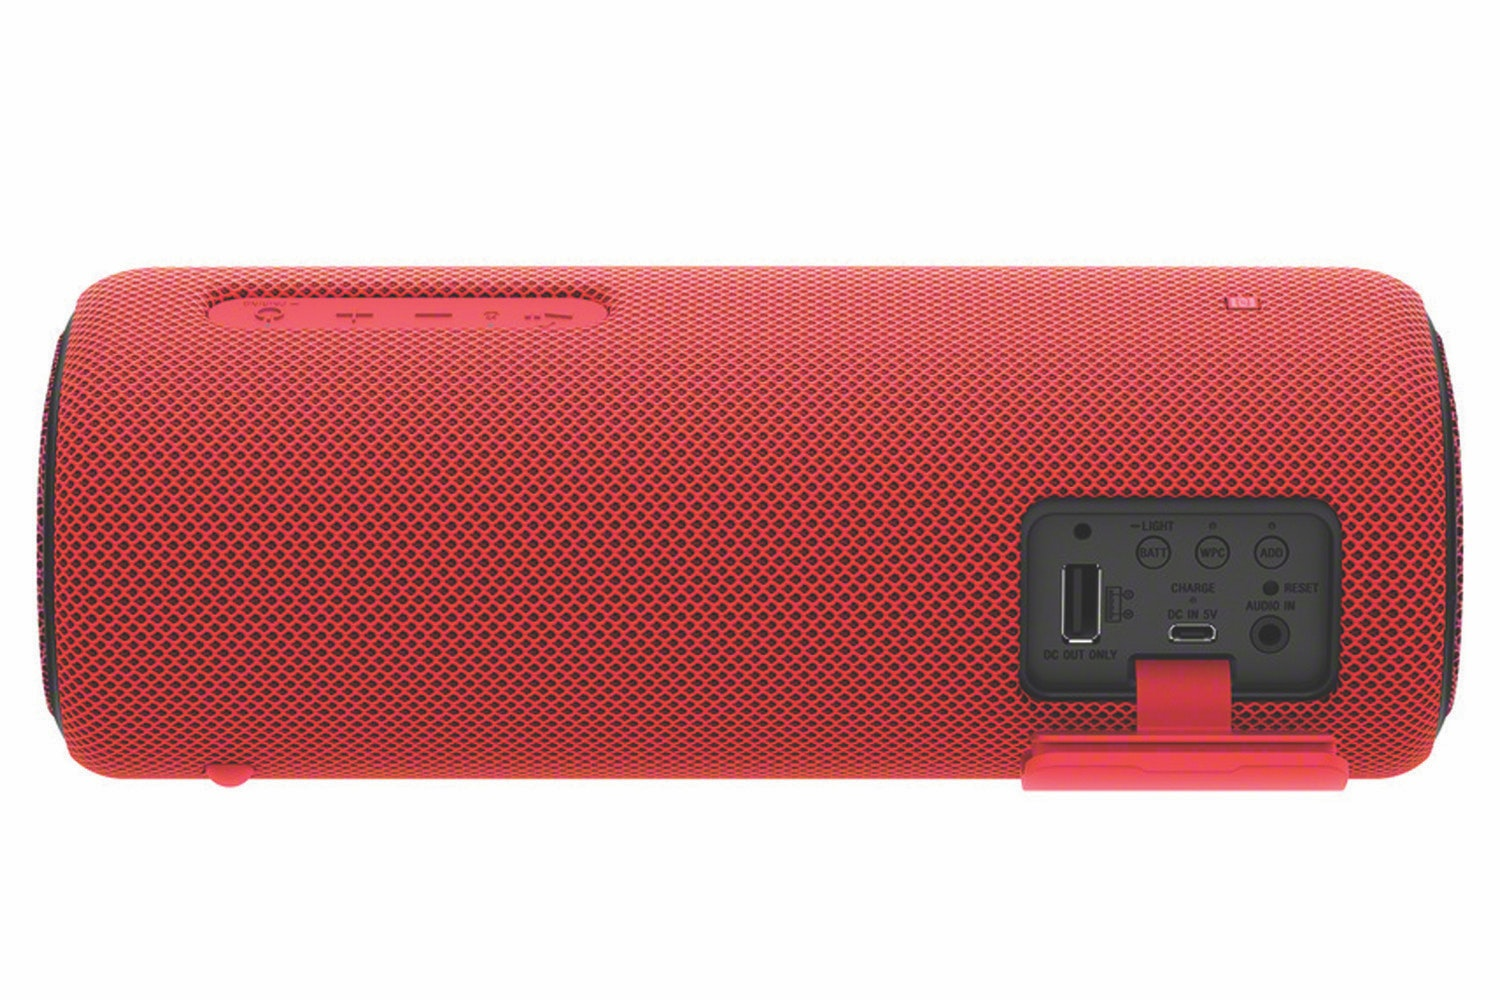 Sony SRSXB31R.CE7 Portable Waterproof Speaker with EXTRA BASS, 24 Hours Battery Life and Lighting Effects